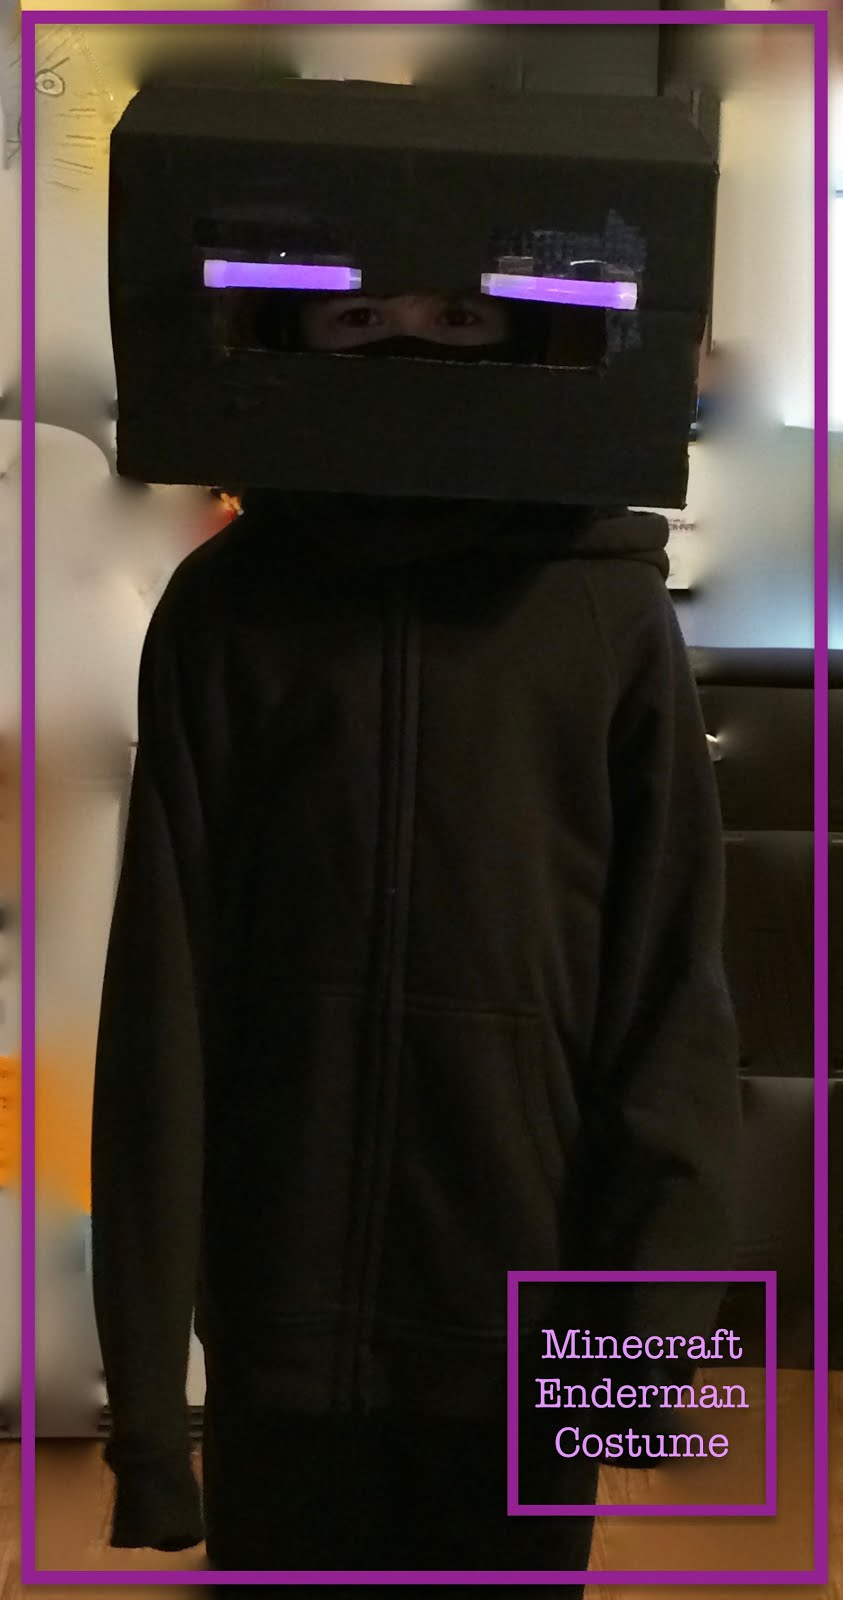 Home Cooked Handmade Minecraft Enderman Costume